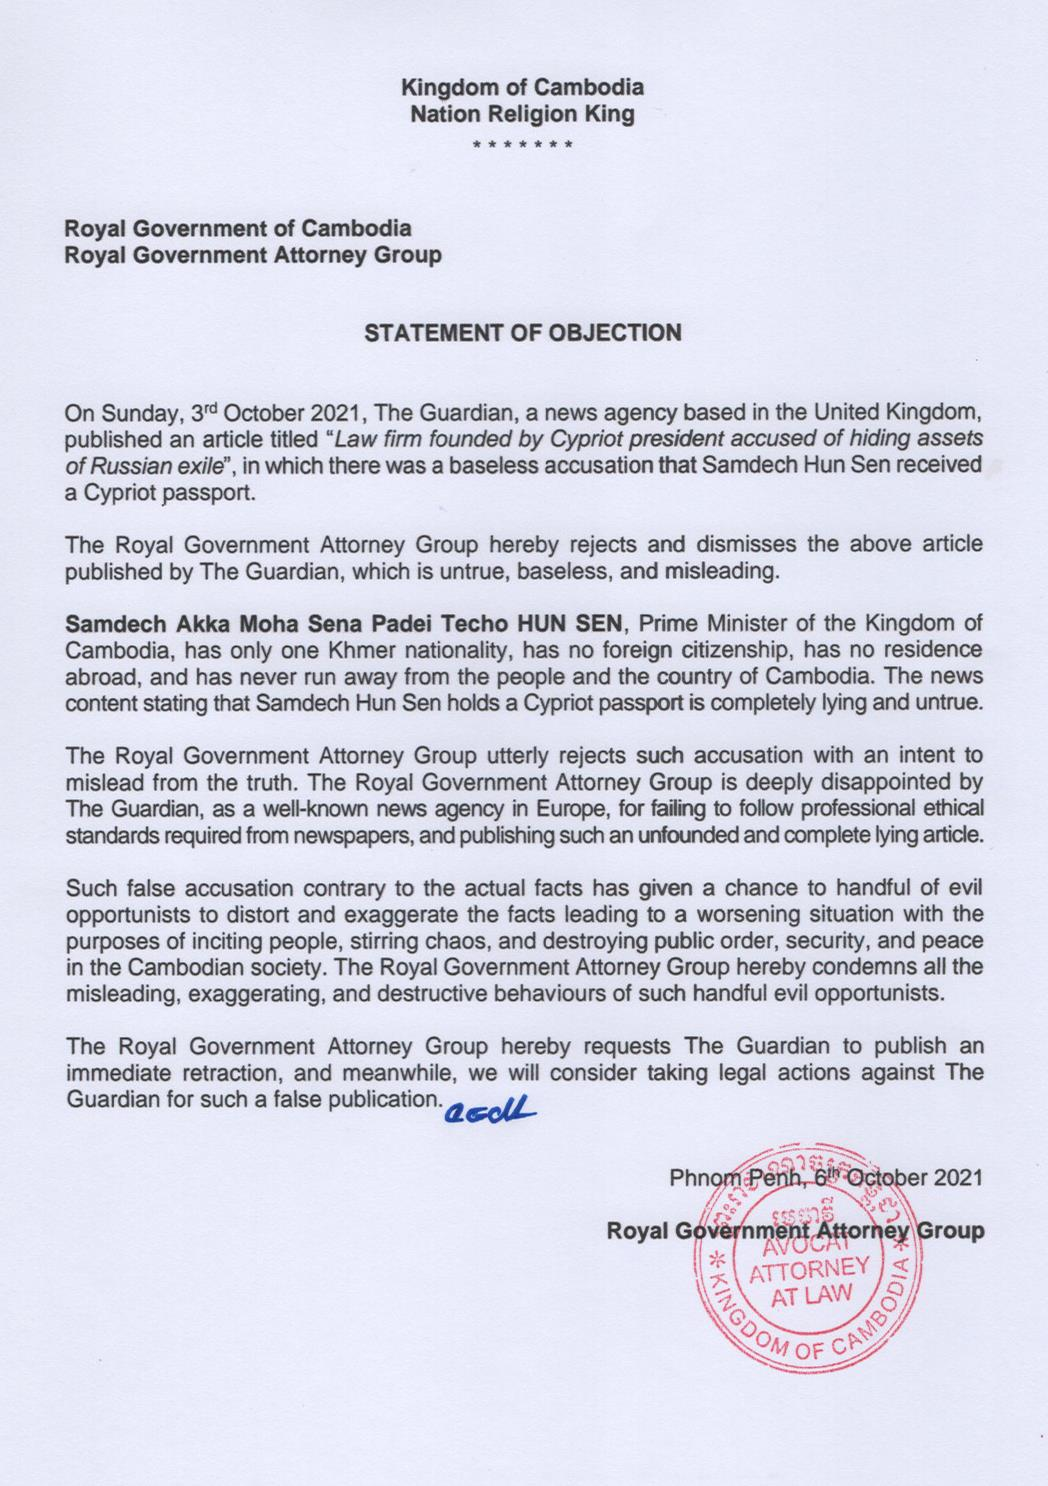 Cambodia Government Lawyer Dismisses The Guardian's False Publication on PM Hun Sen's Cypriot Passport